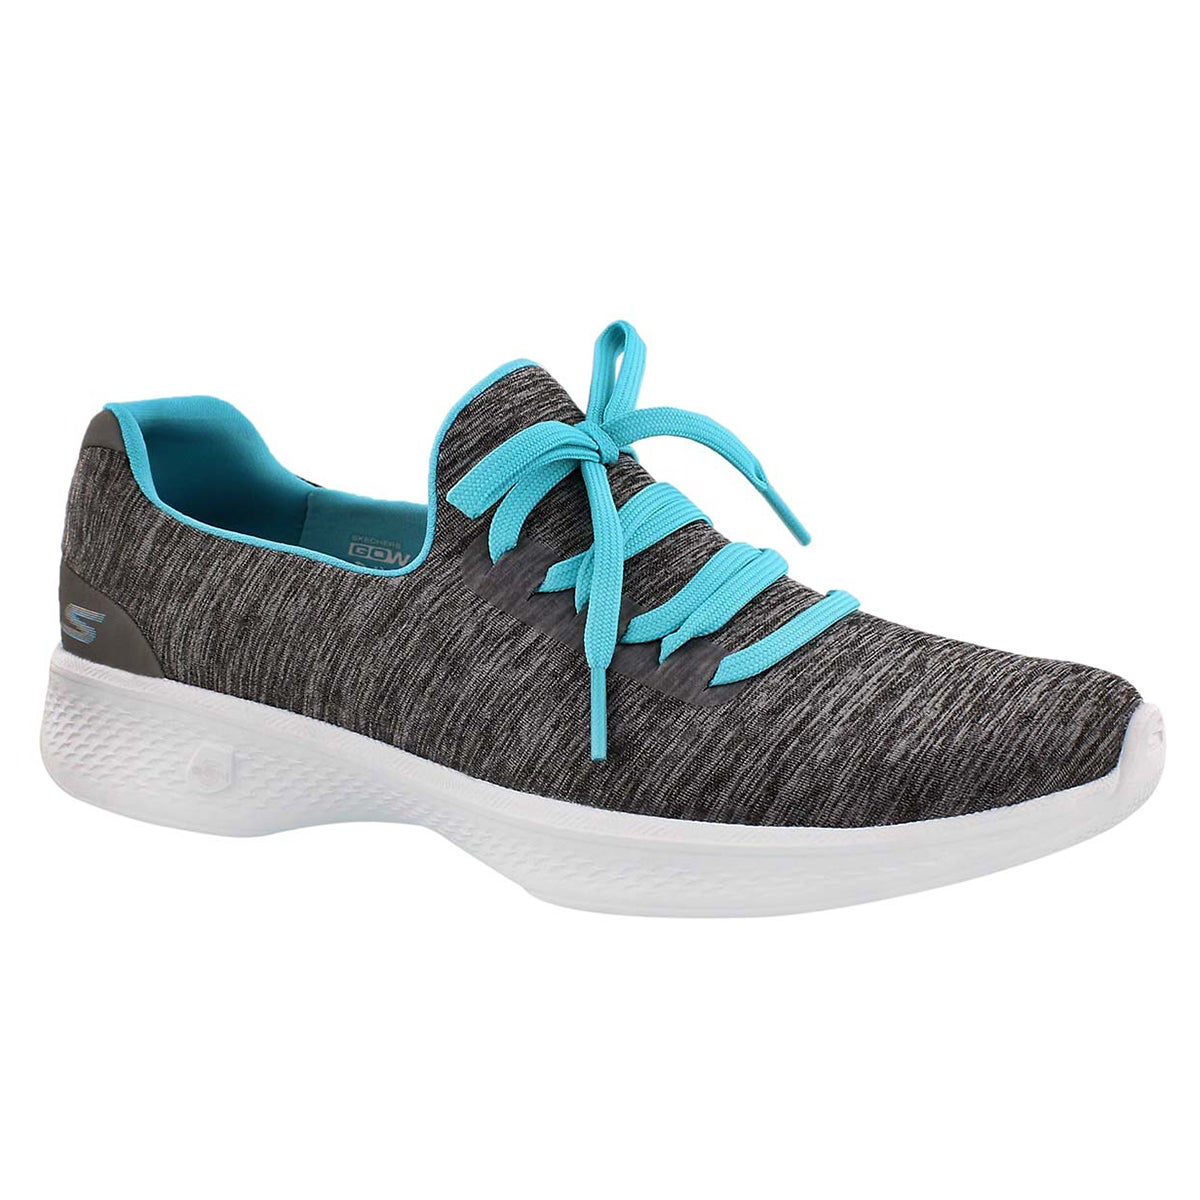 Women's GOwalk 4 grey/blue lace up walking shoes